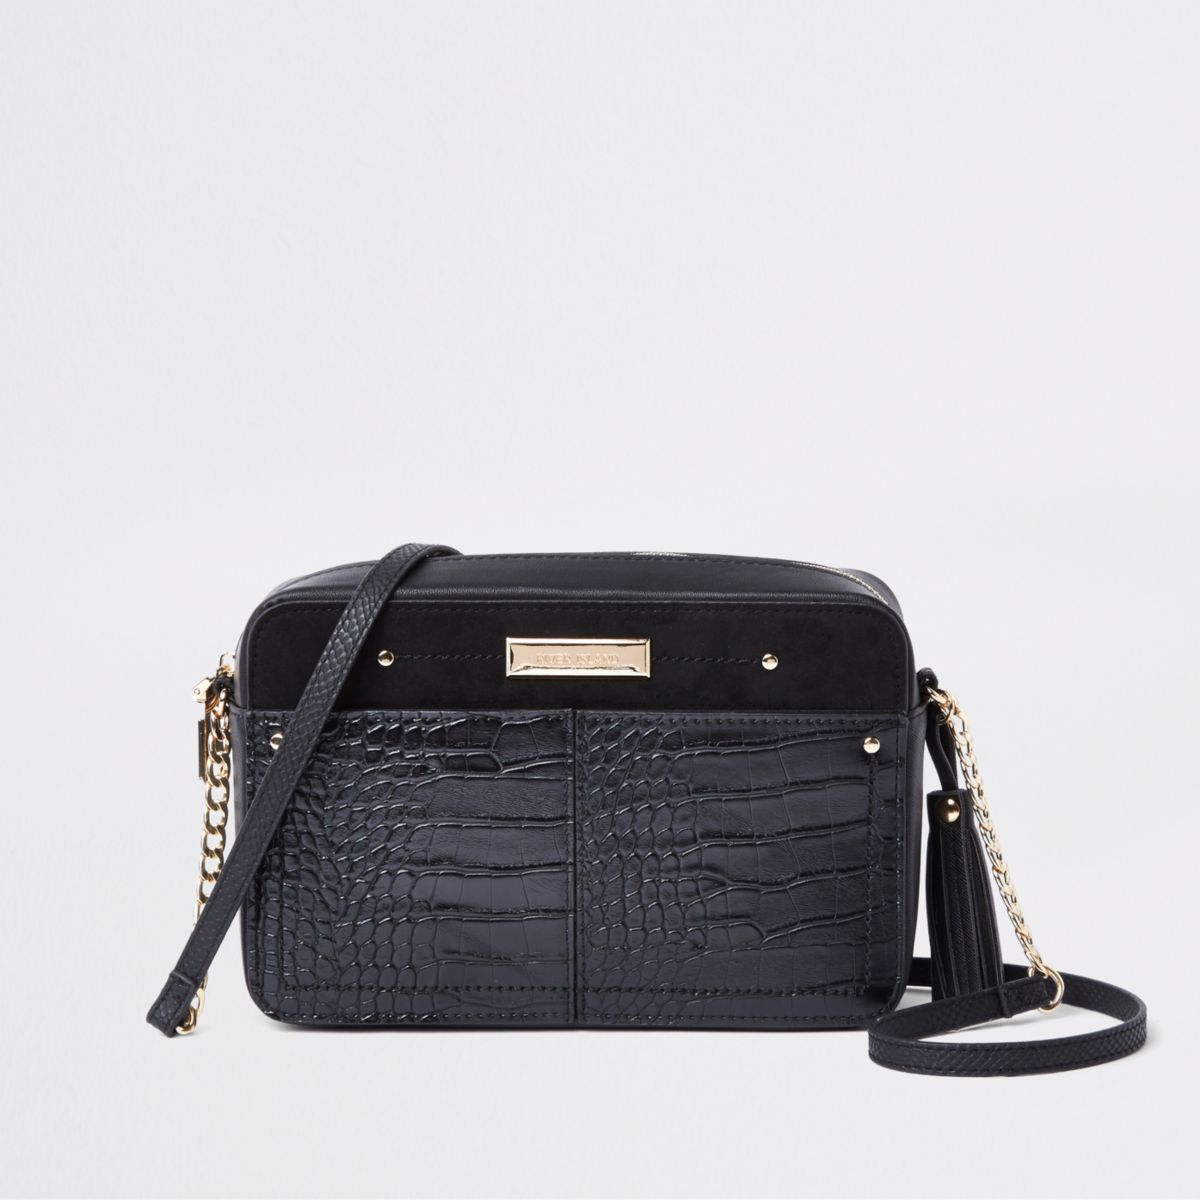 Black Croc Embossed Boxy Cross Body Bag by River Island